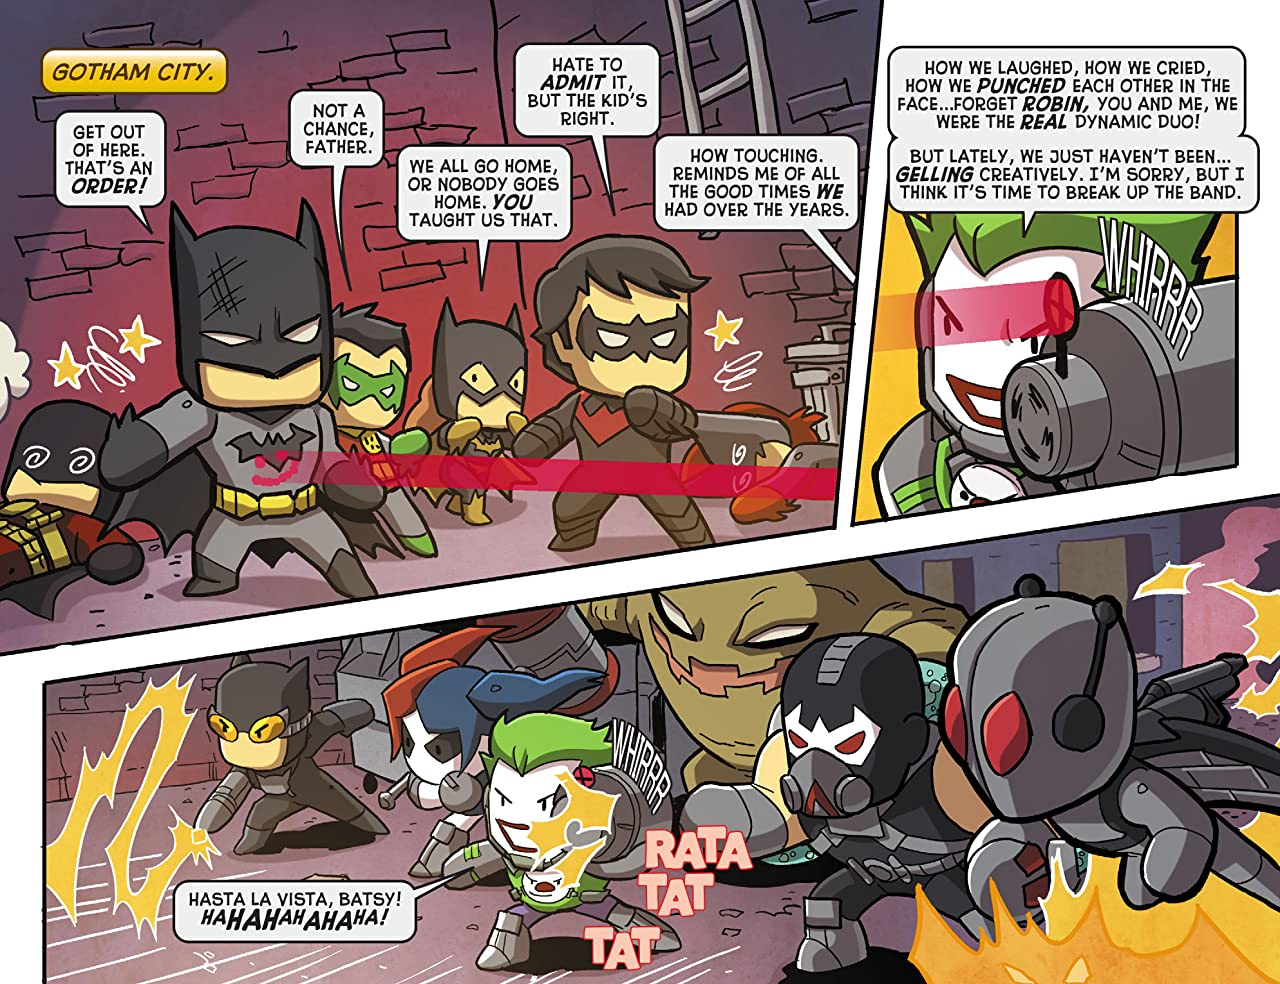 Scribblenauts Unmasked: A Crisis of Imagination #2